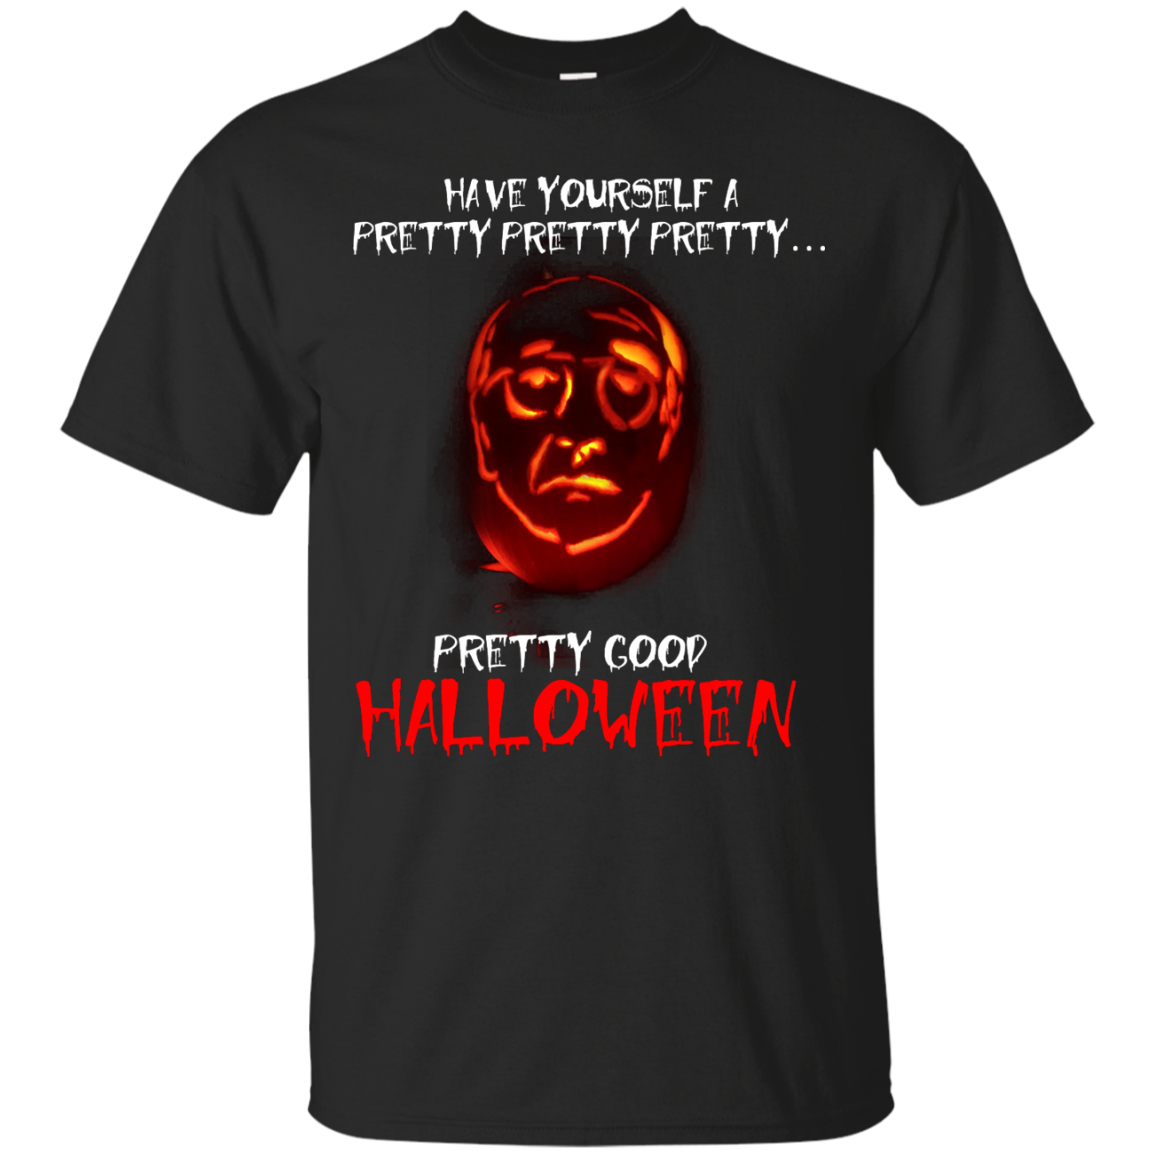 larry david have yourself a pretty pretty pretty good halloween - Good Halloween Font